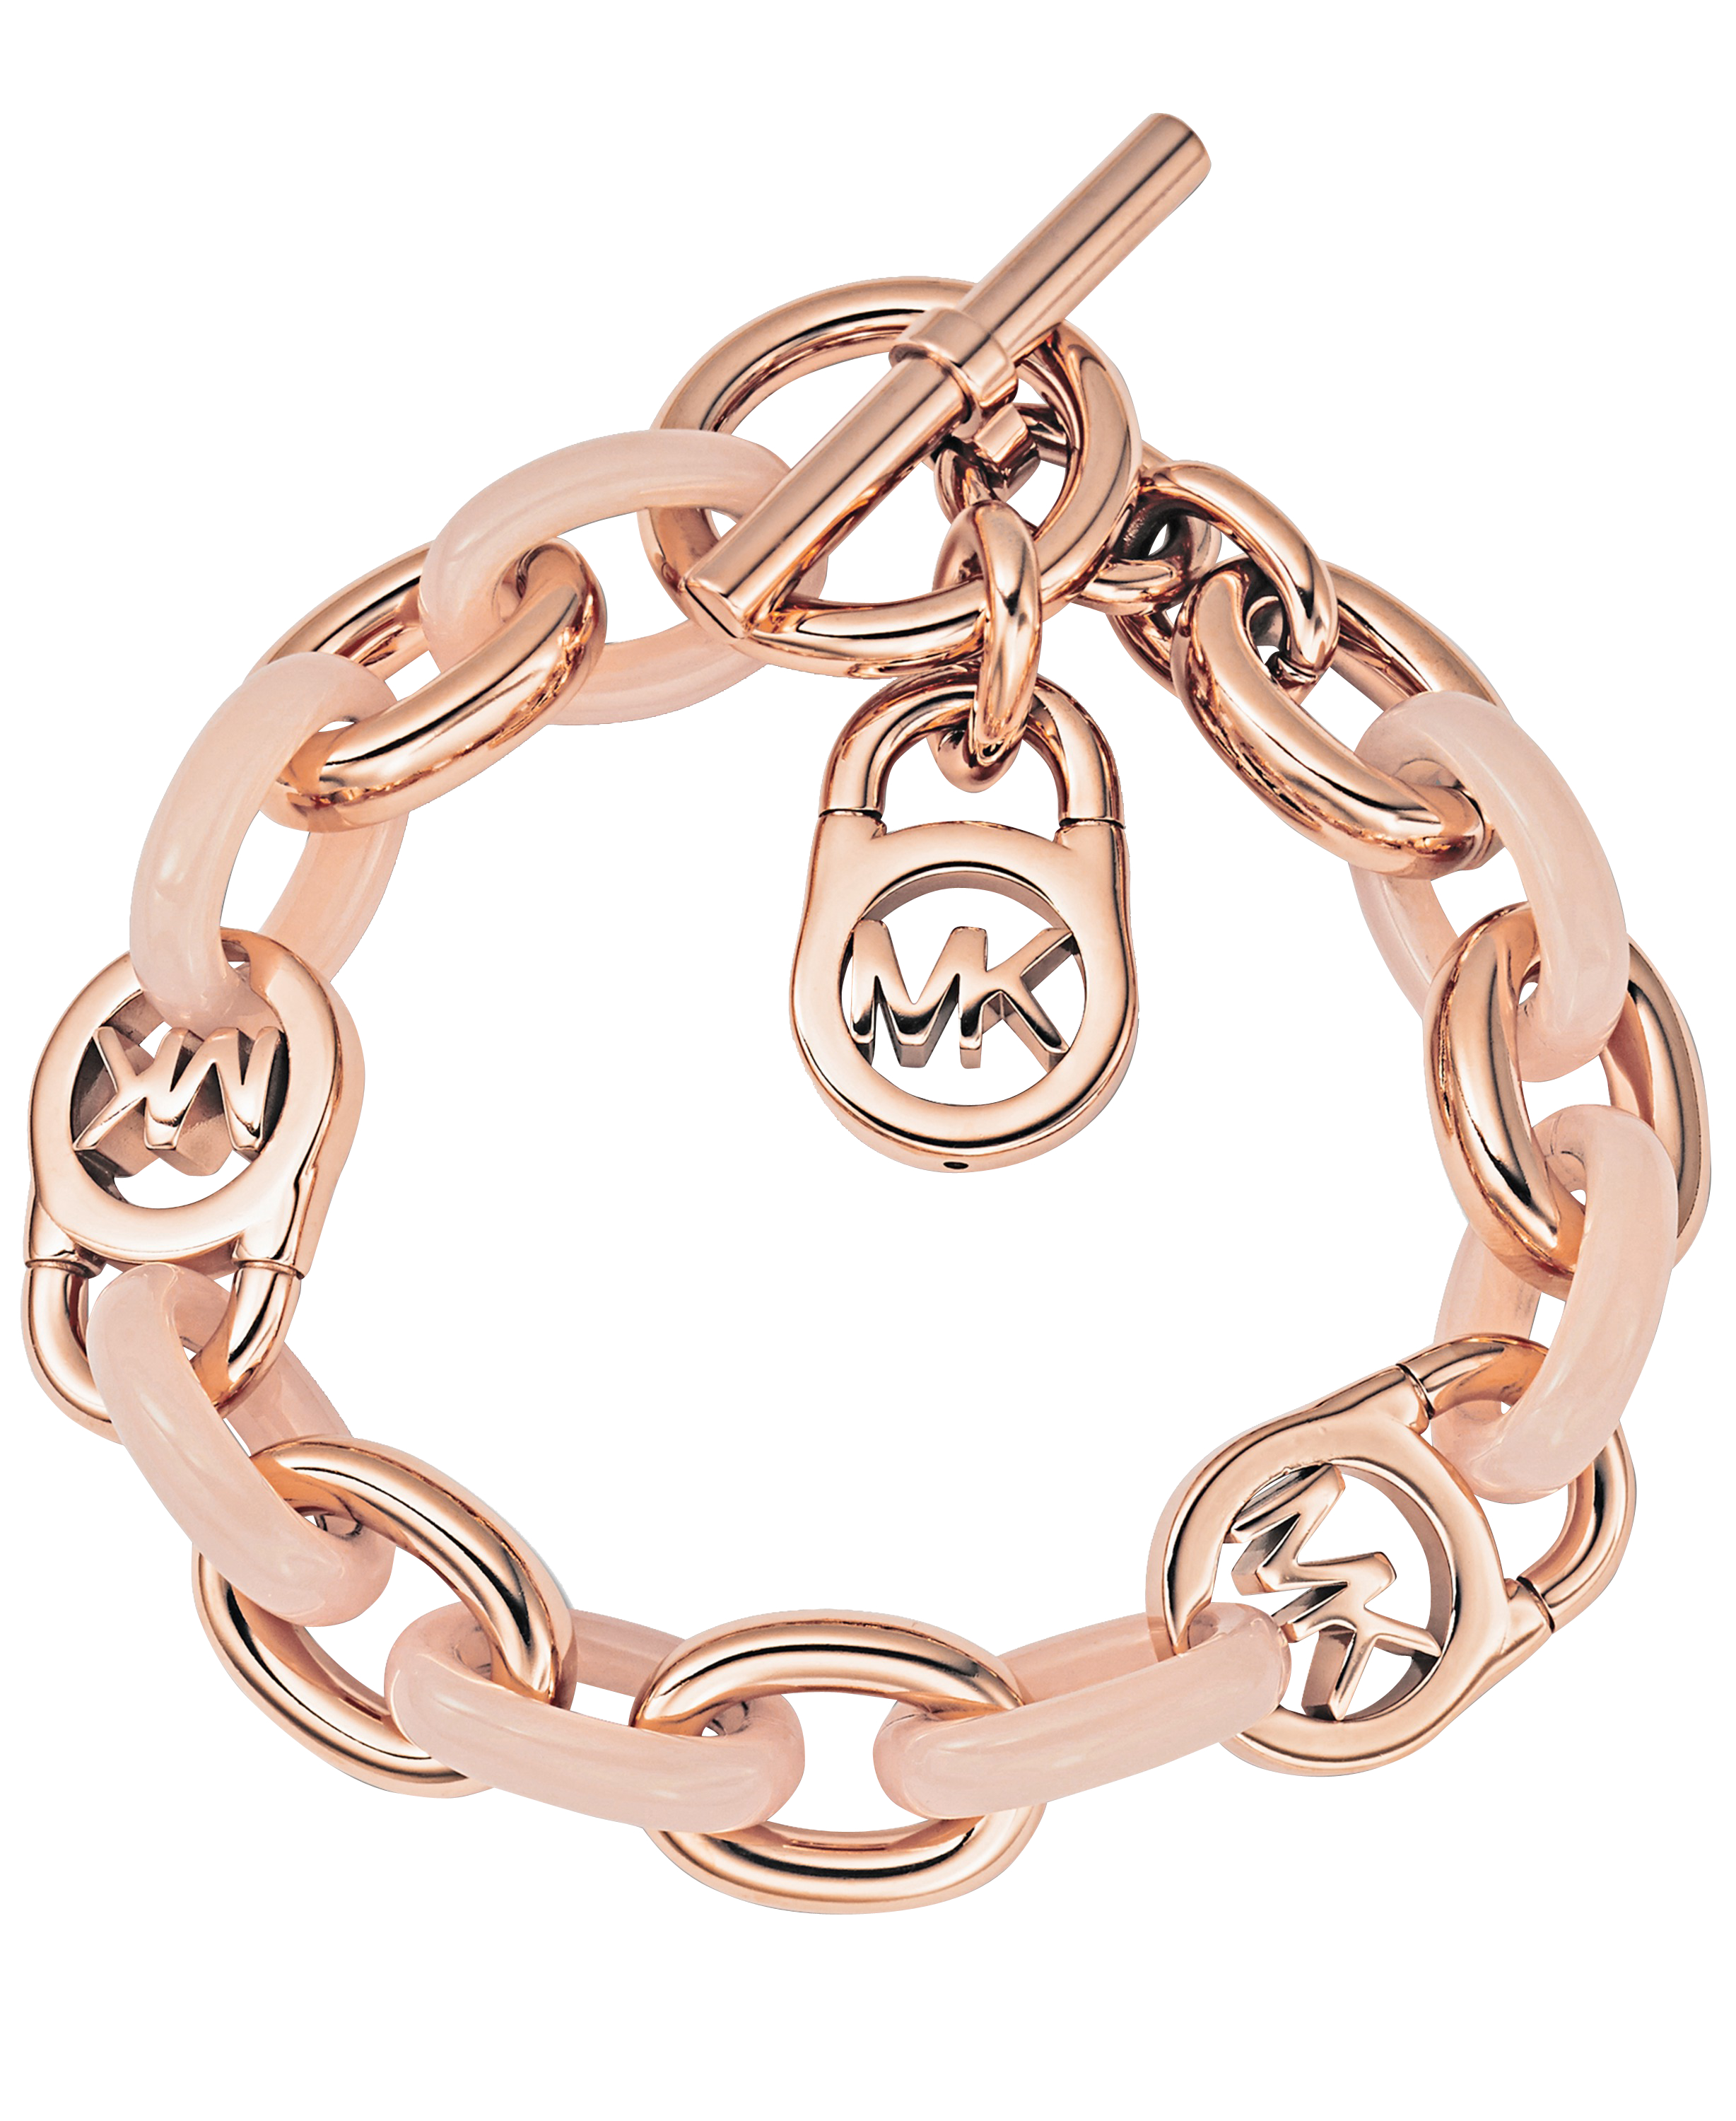 Rose Gold Armband Lyst Michael Michael Kors Armband Rose Gold Blush In Metallic